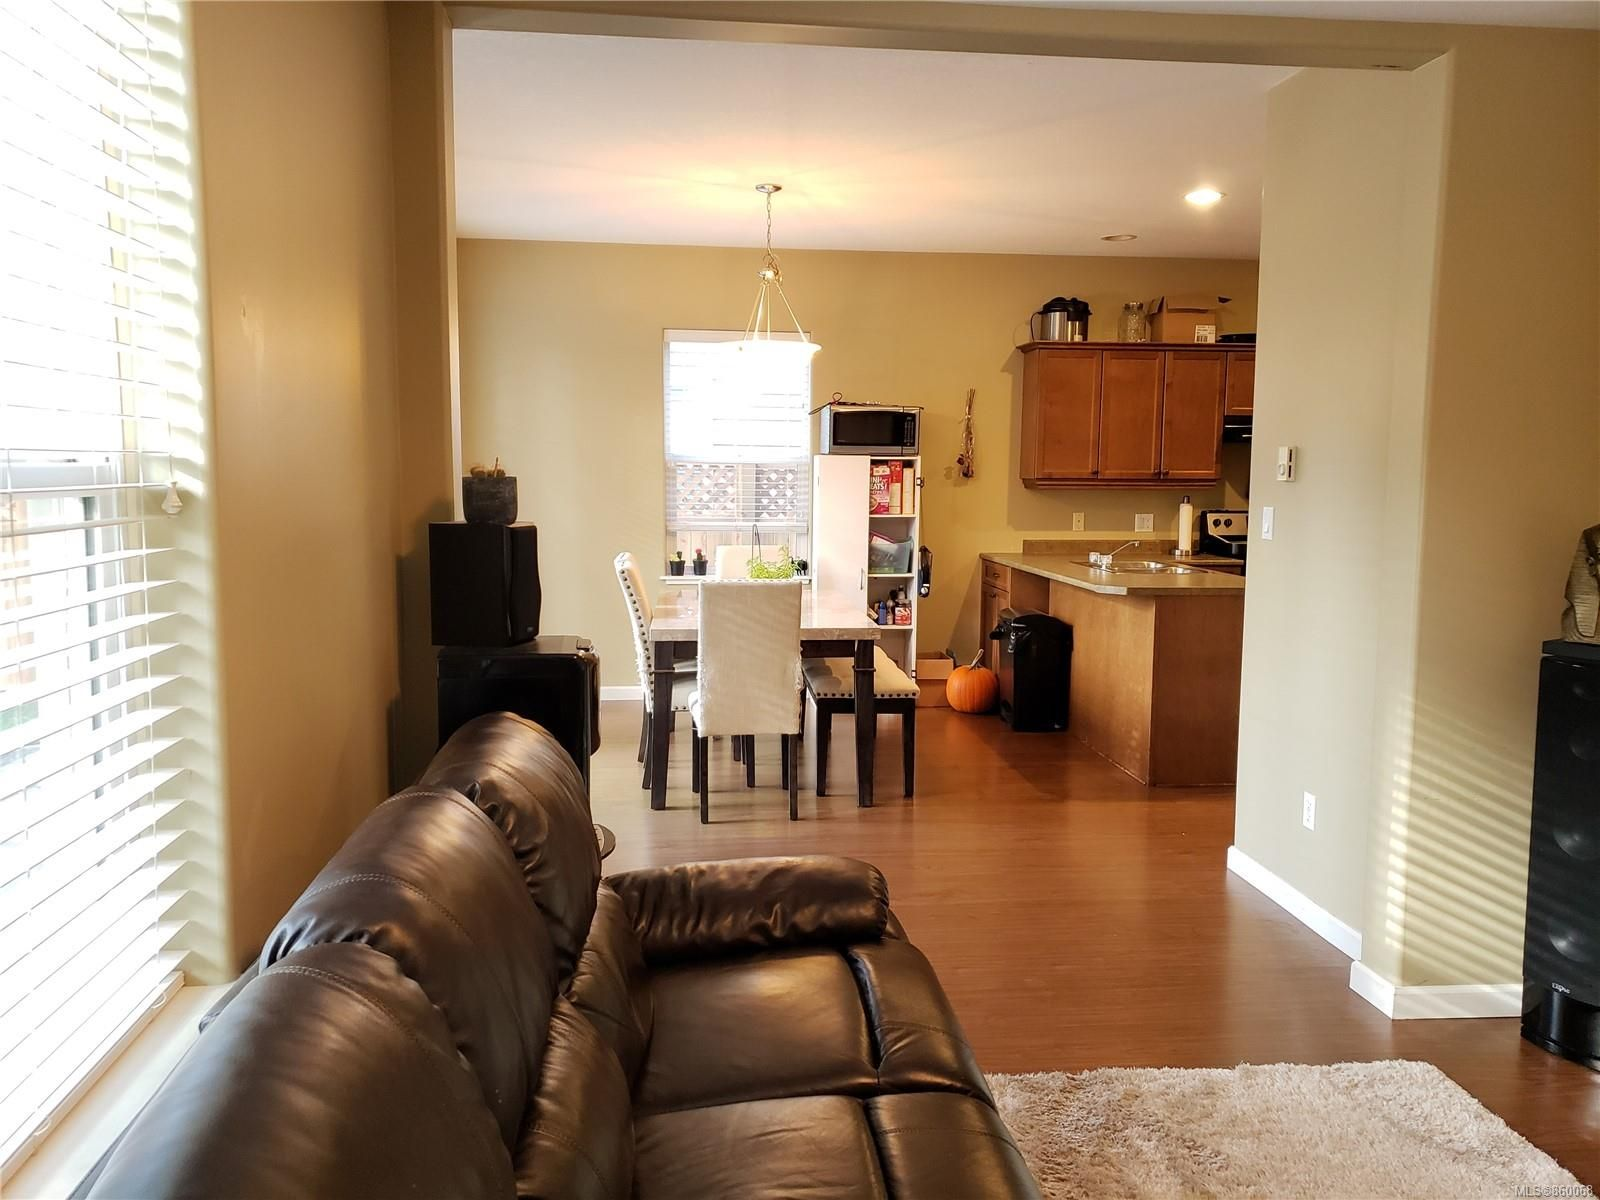 Photo 13: Photos: 105 2787 1st St in Courtenay: CV Courtenay City House for sale (Comox Valley)  : MLS®# 860068